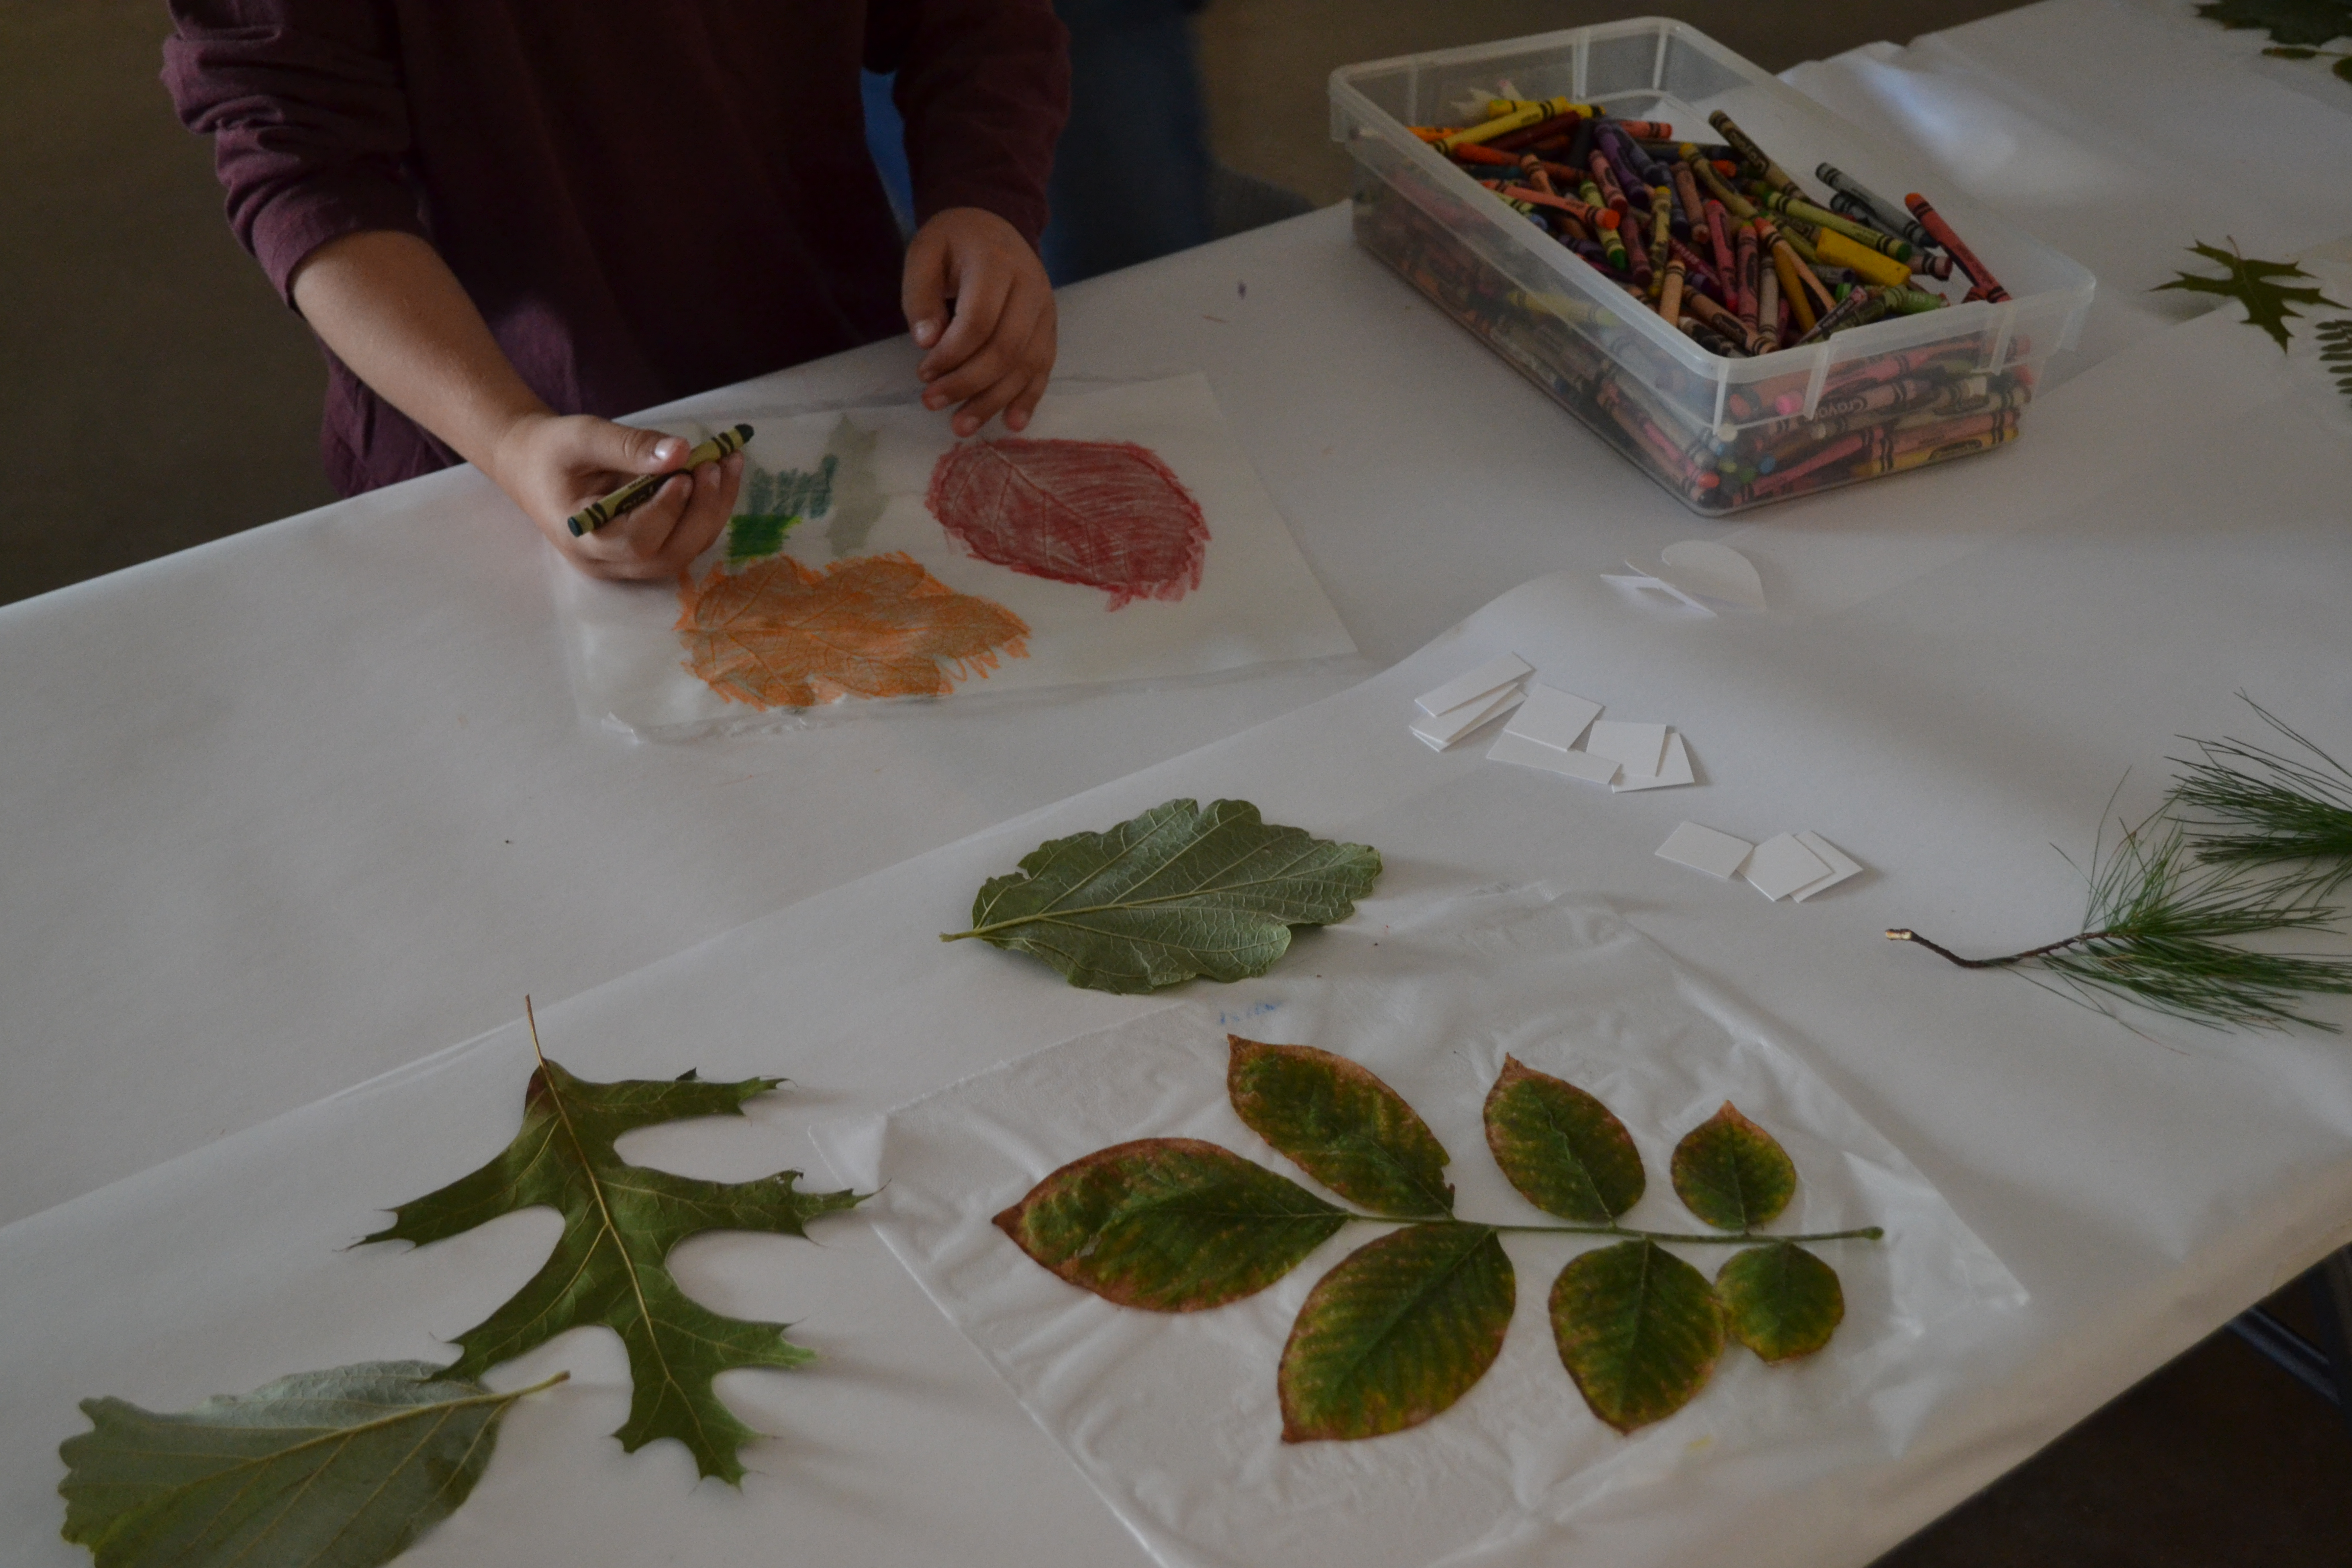 Leaves for crafting on table